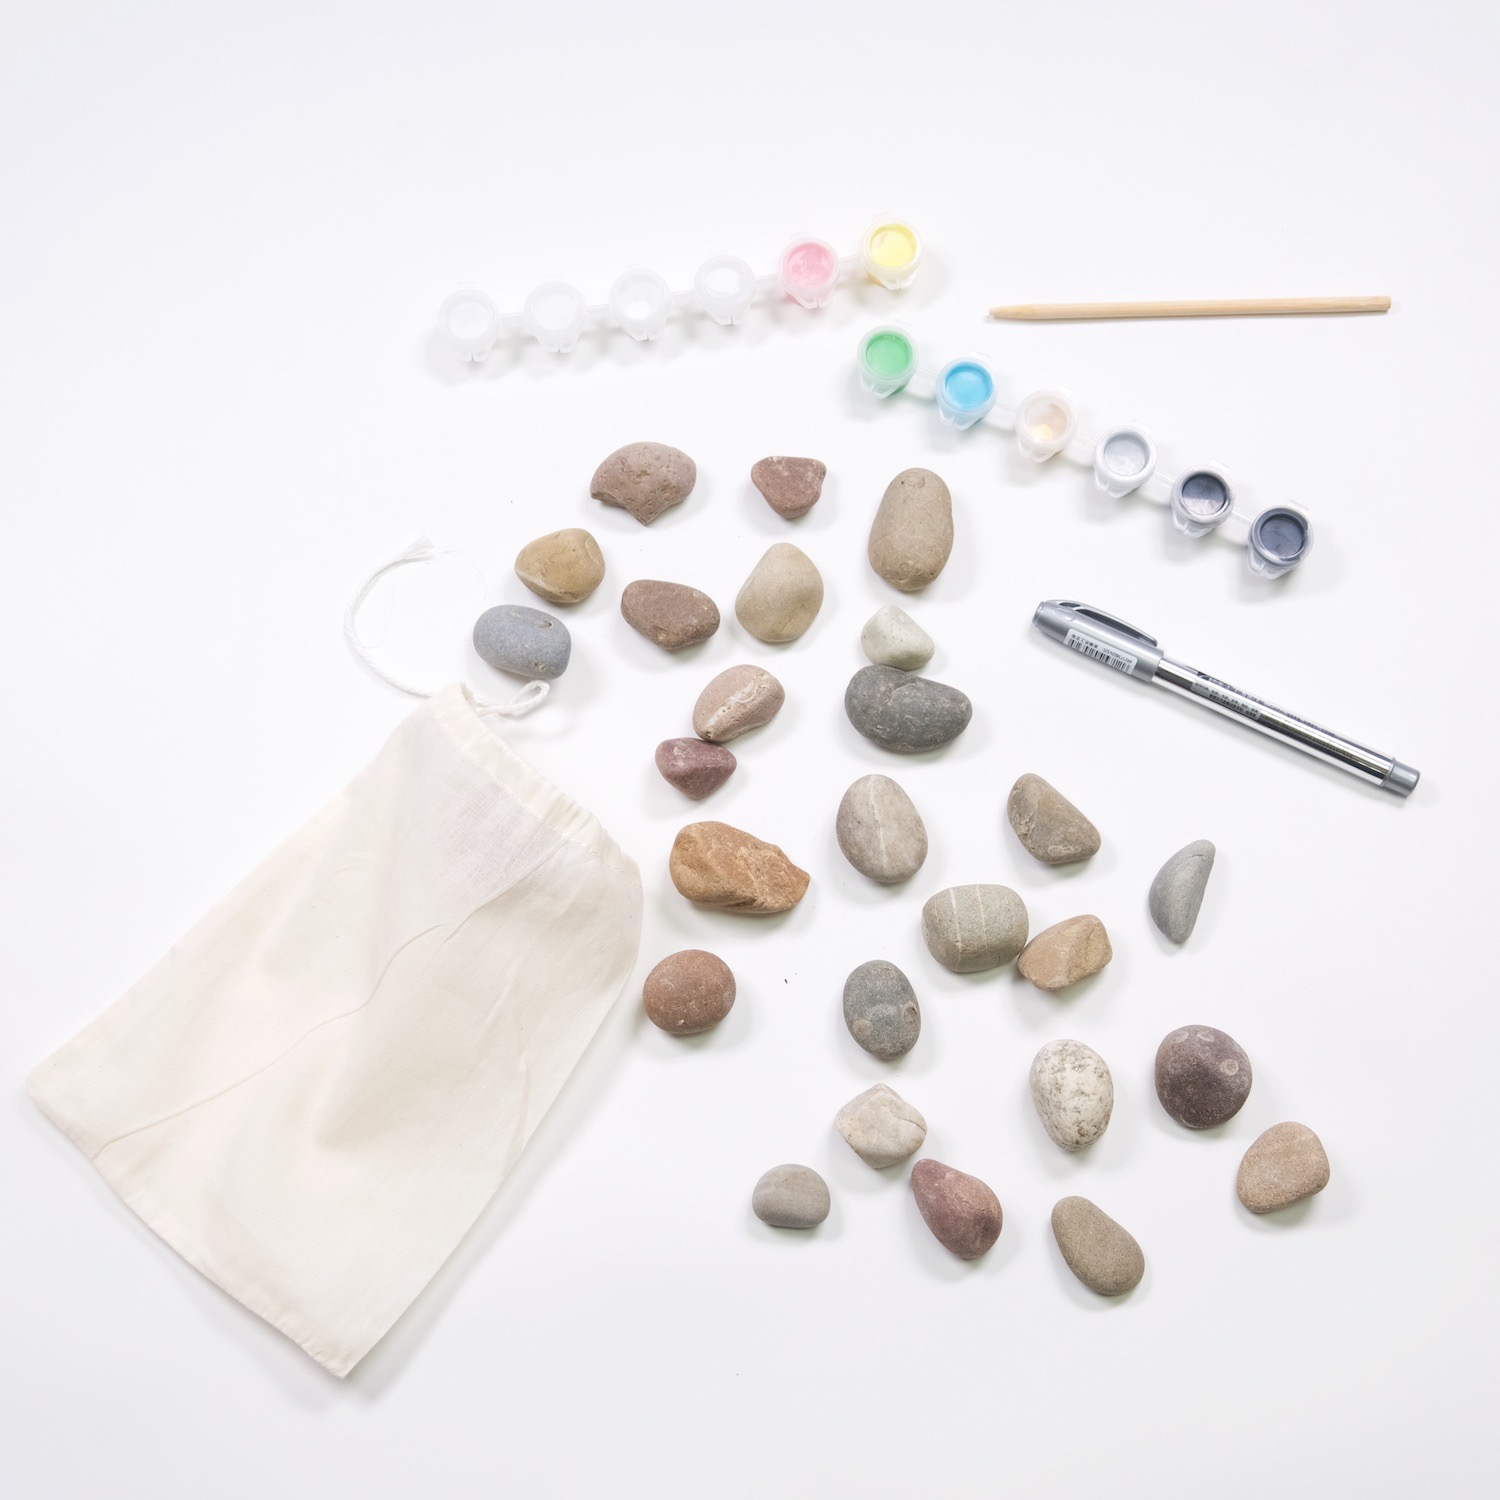 supplies to make a rock domino set with acrylic paint